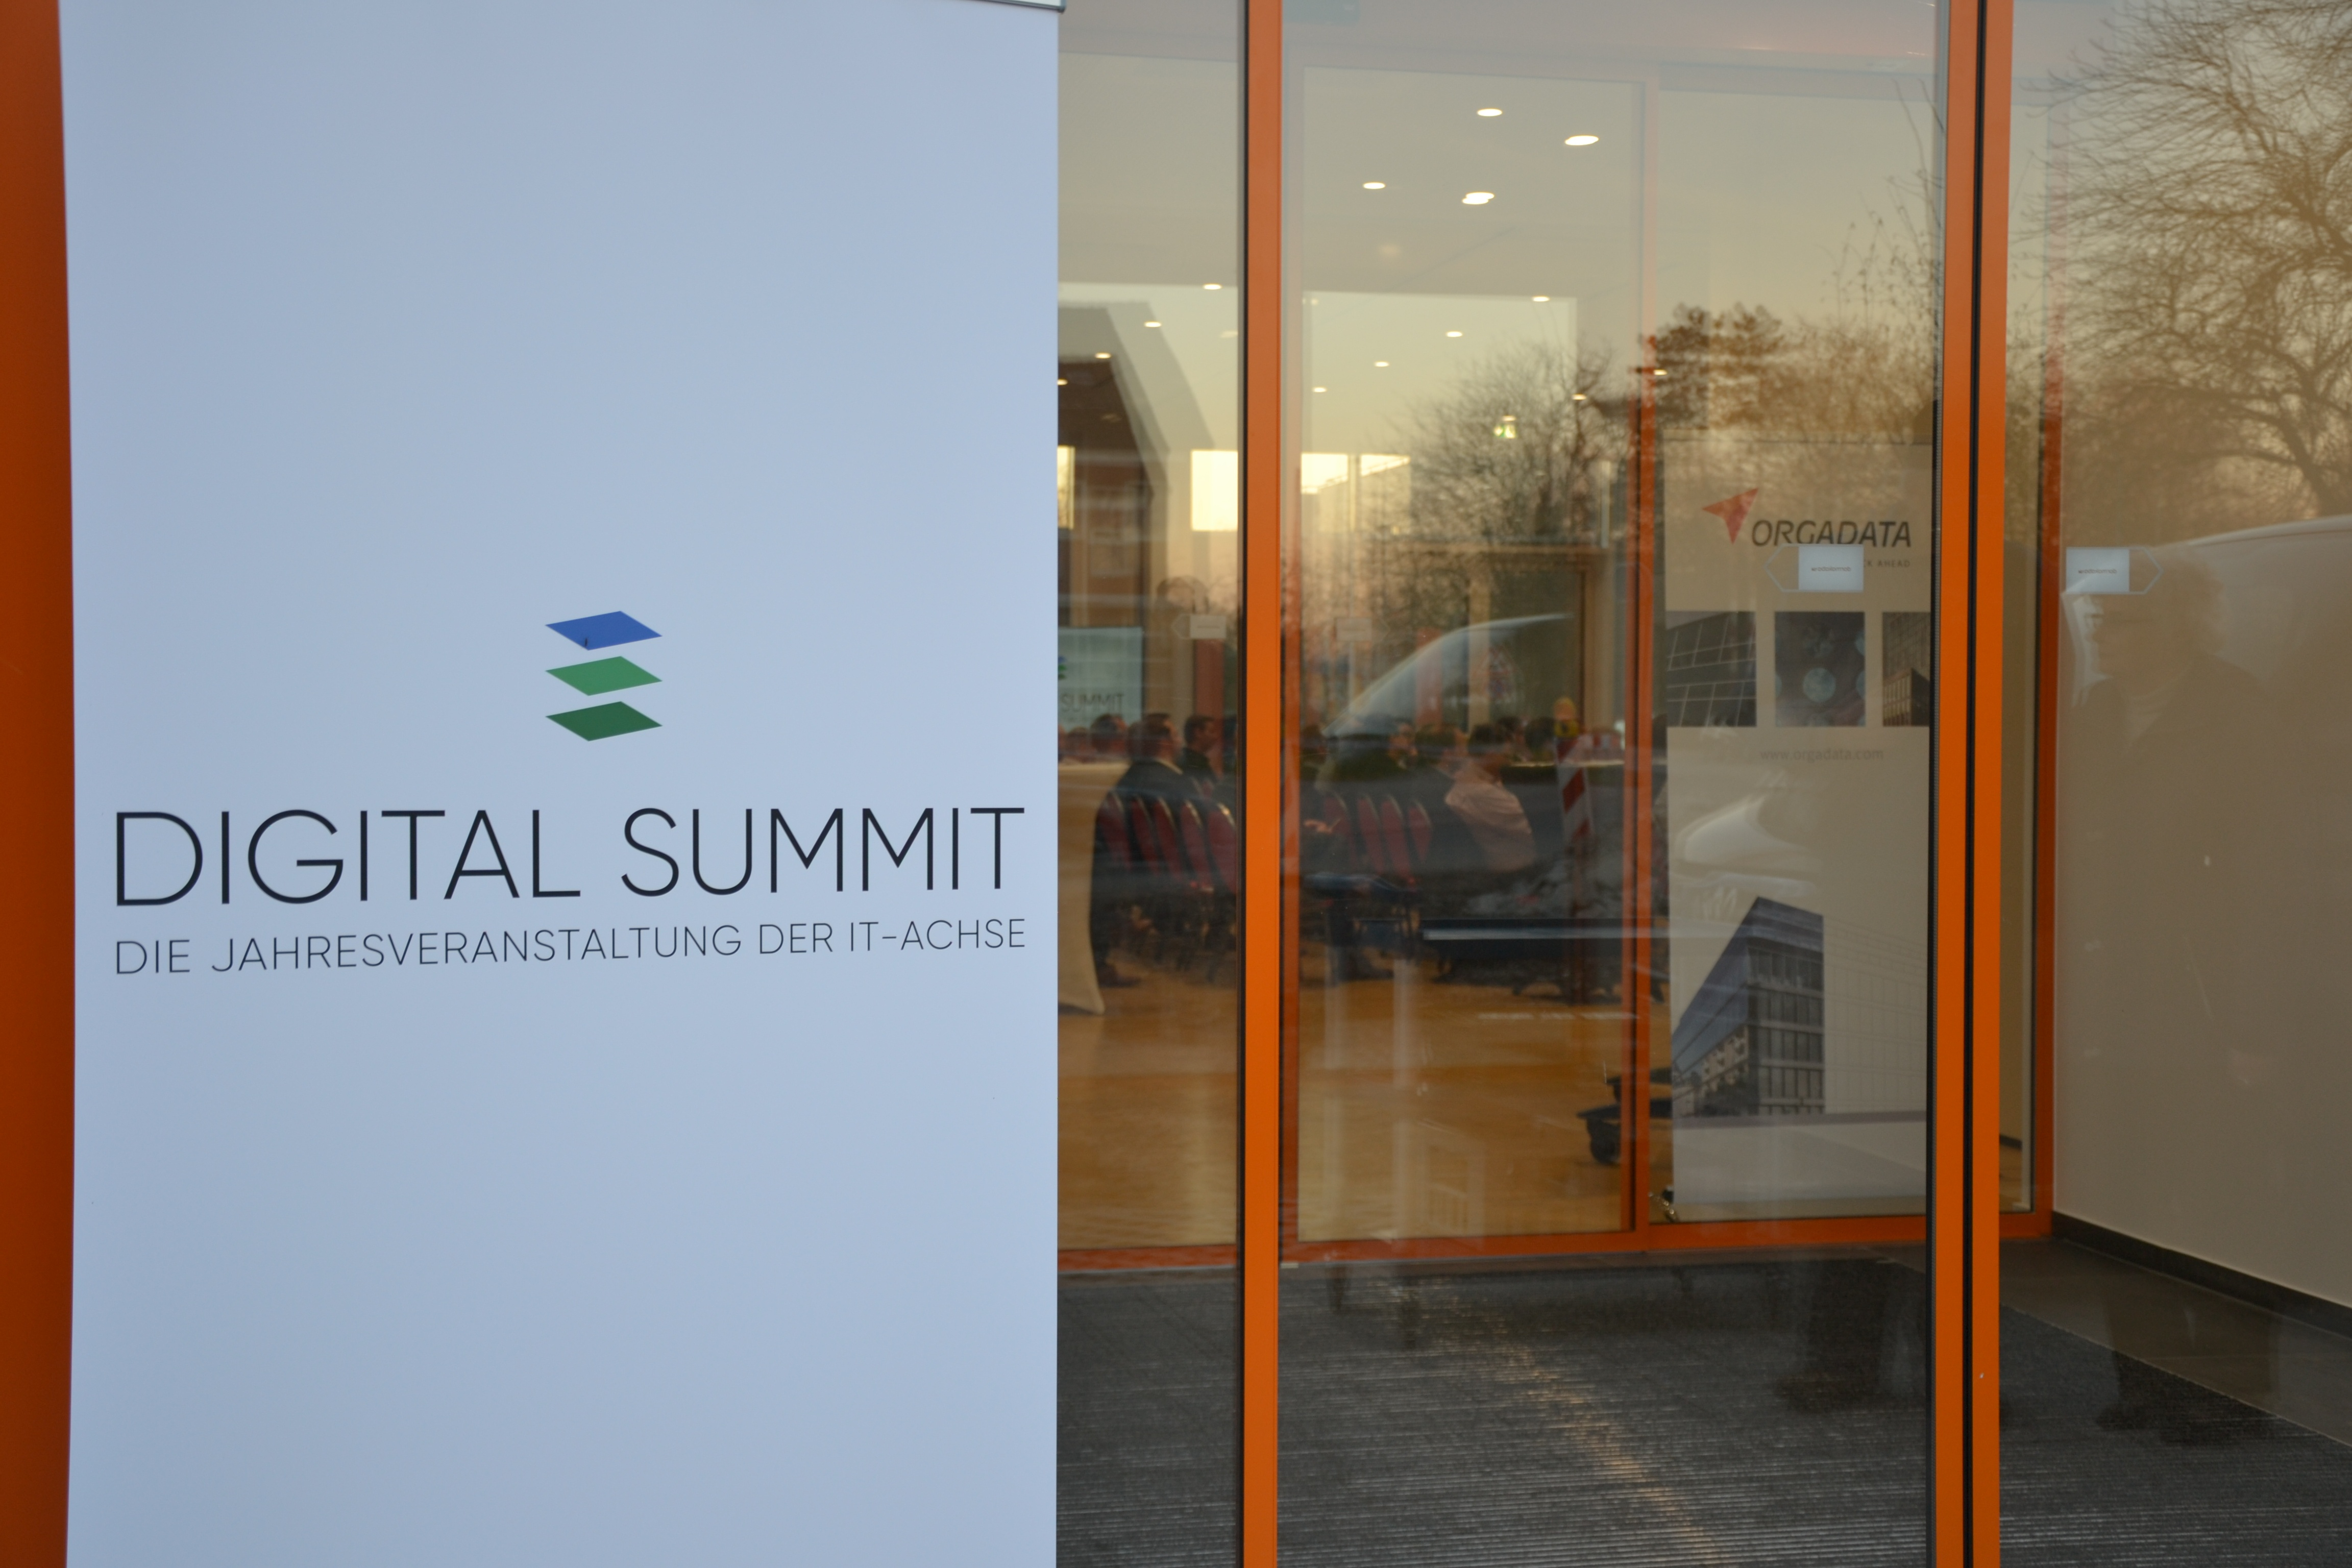 Zweiter Digital Summit der IT-Achse.